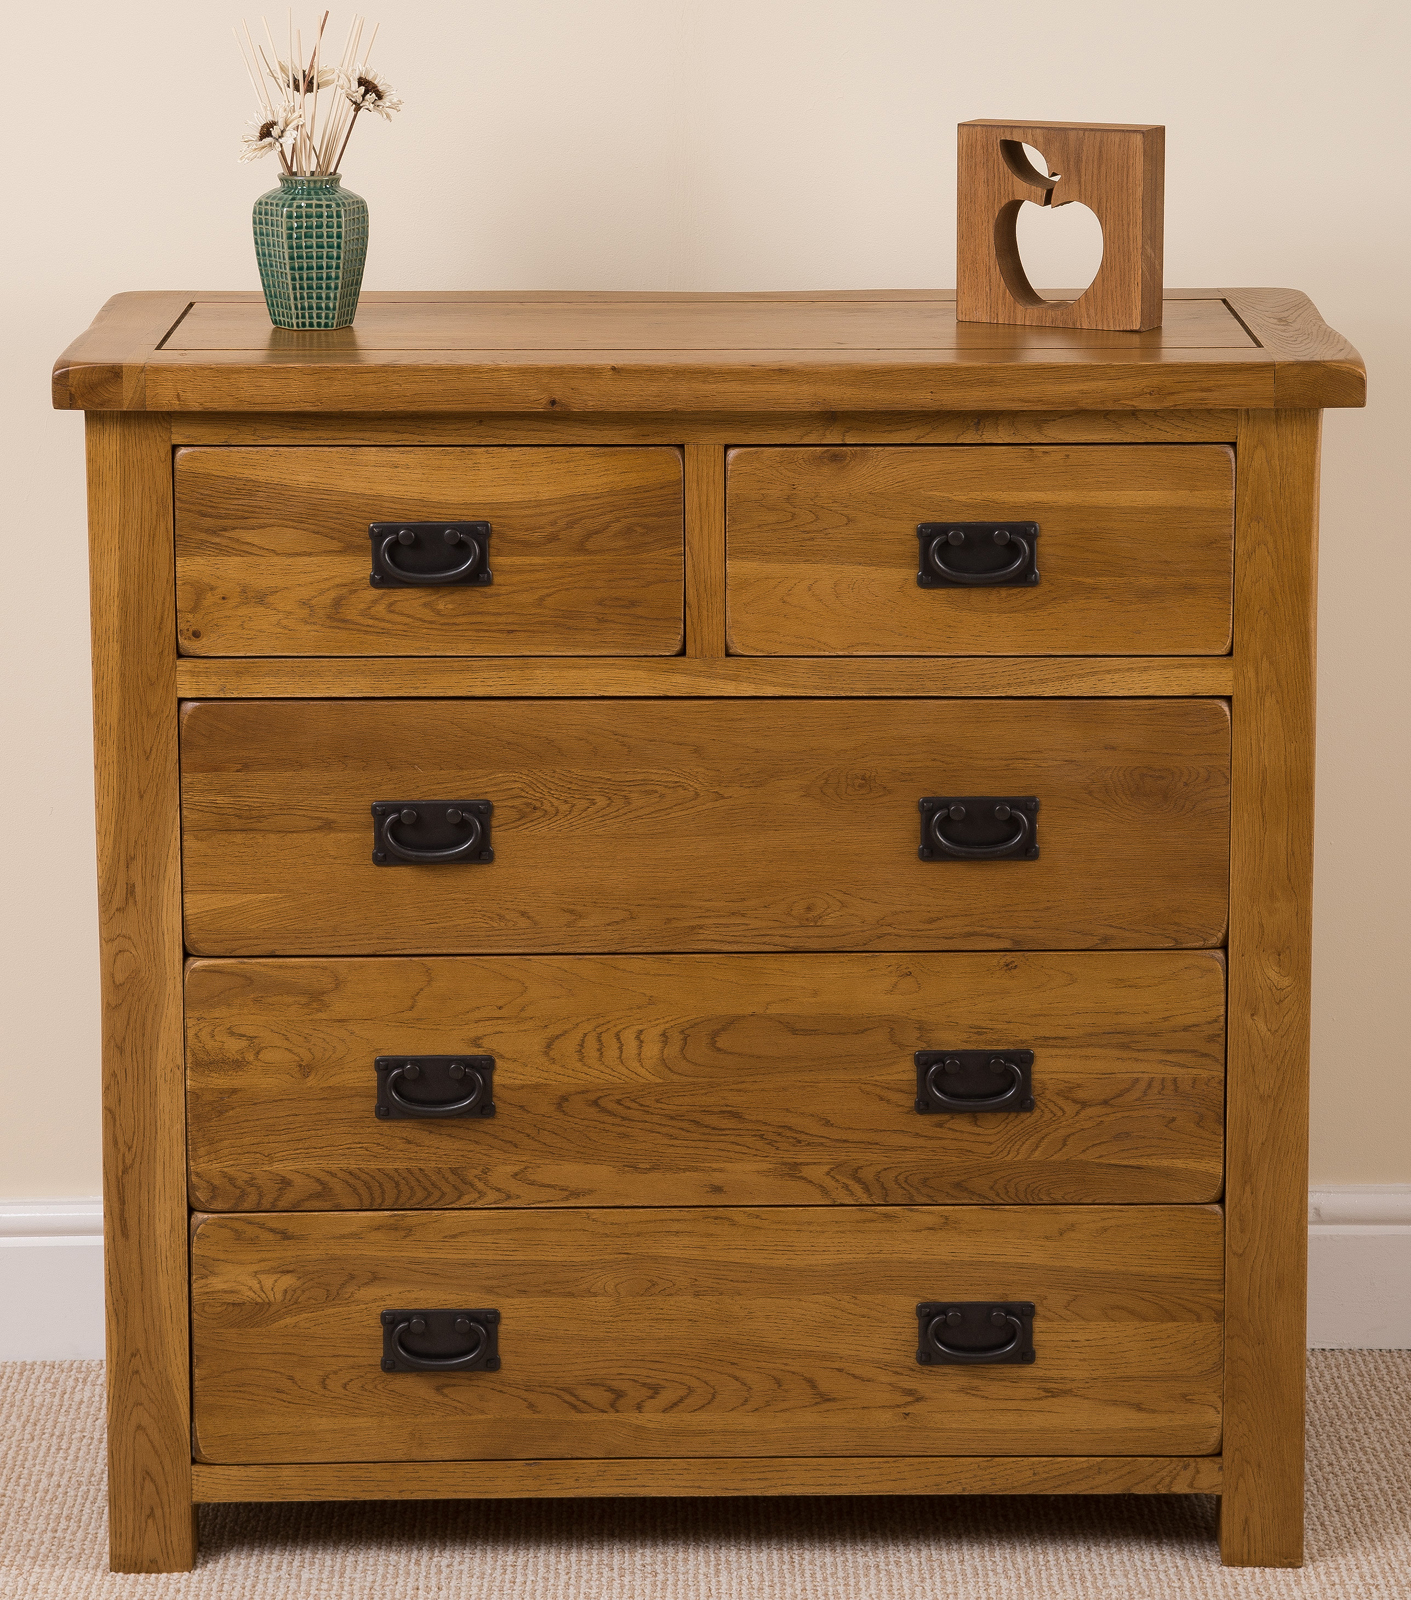 cotswold rustic solid oak 2 3 chest of drawers bedroom furniture new